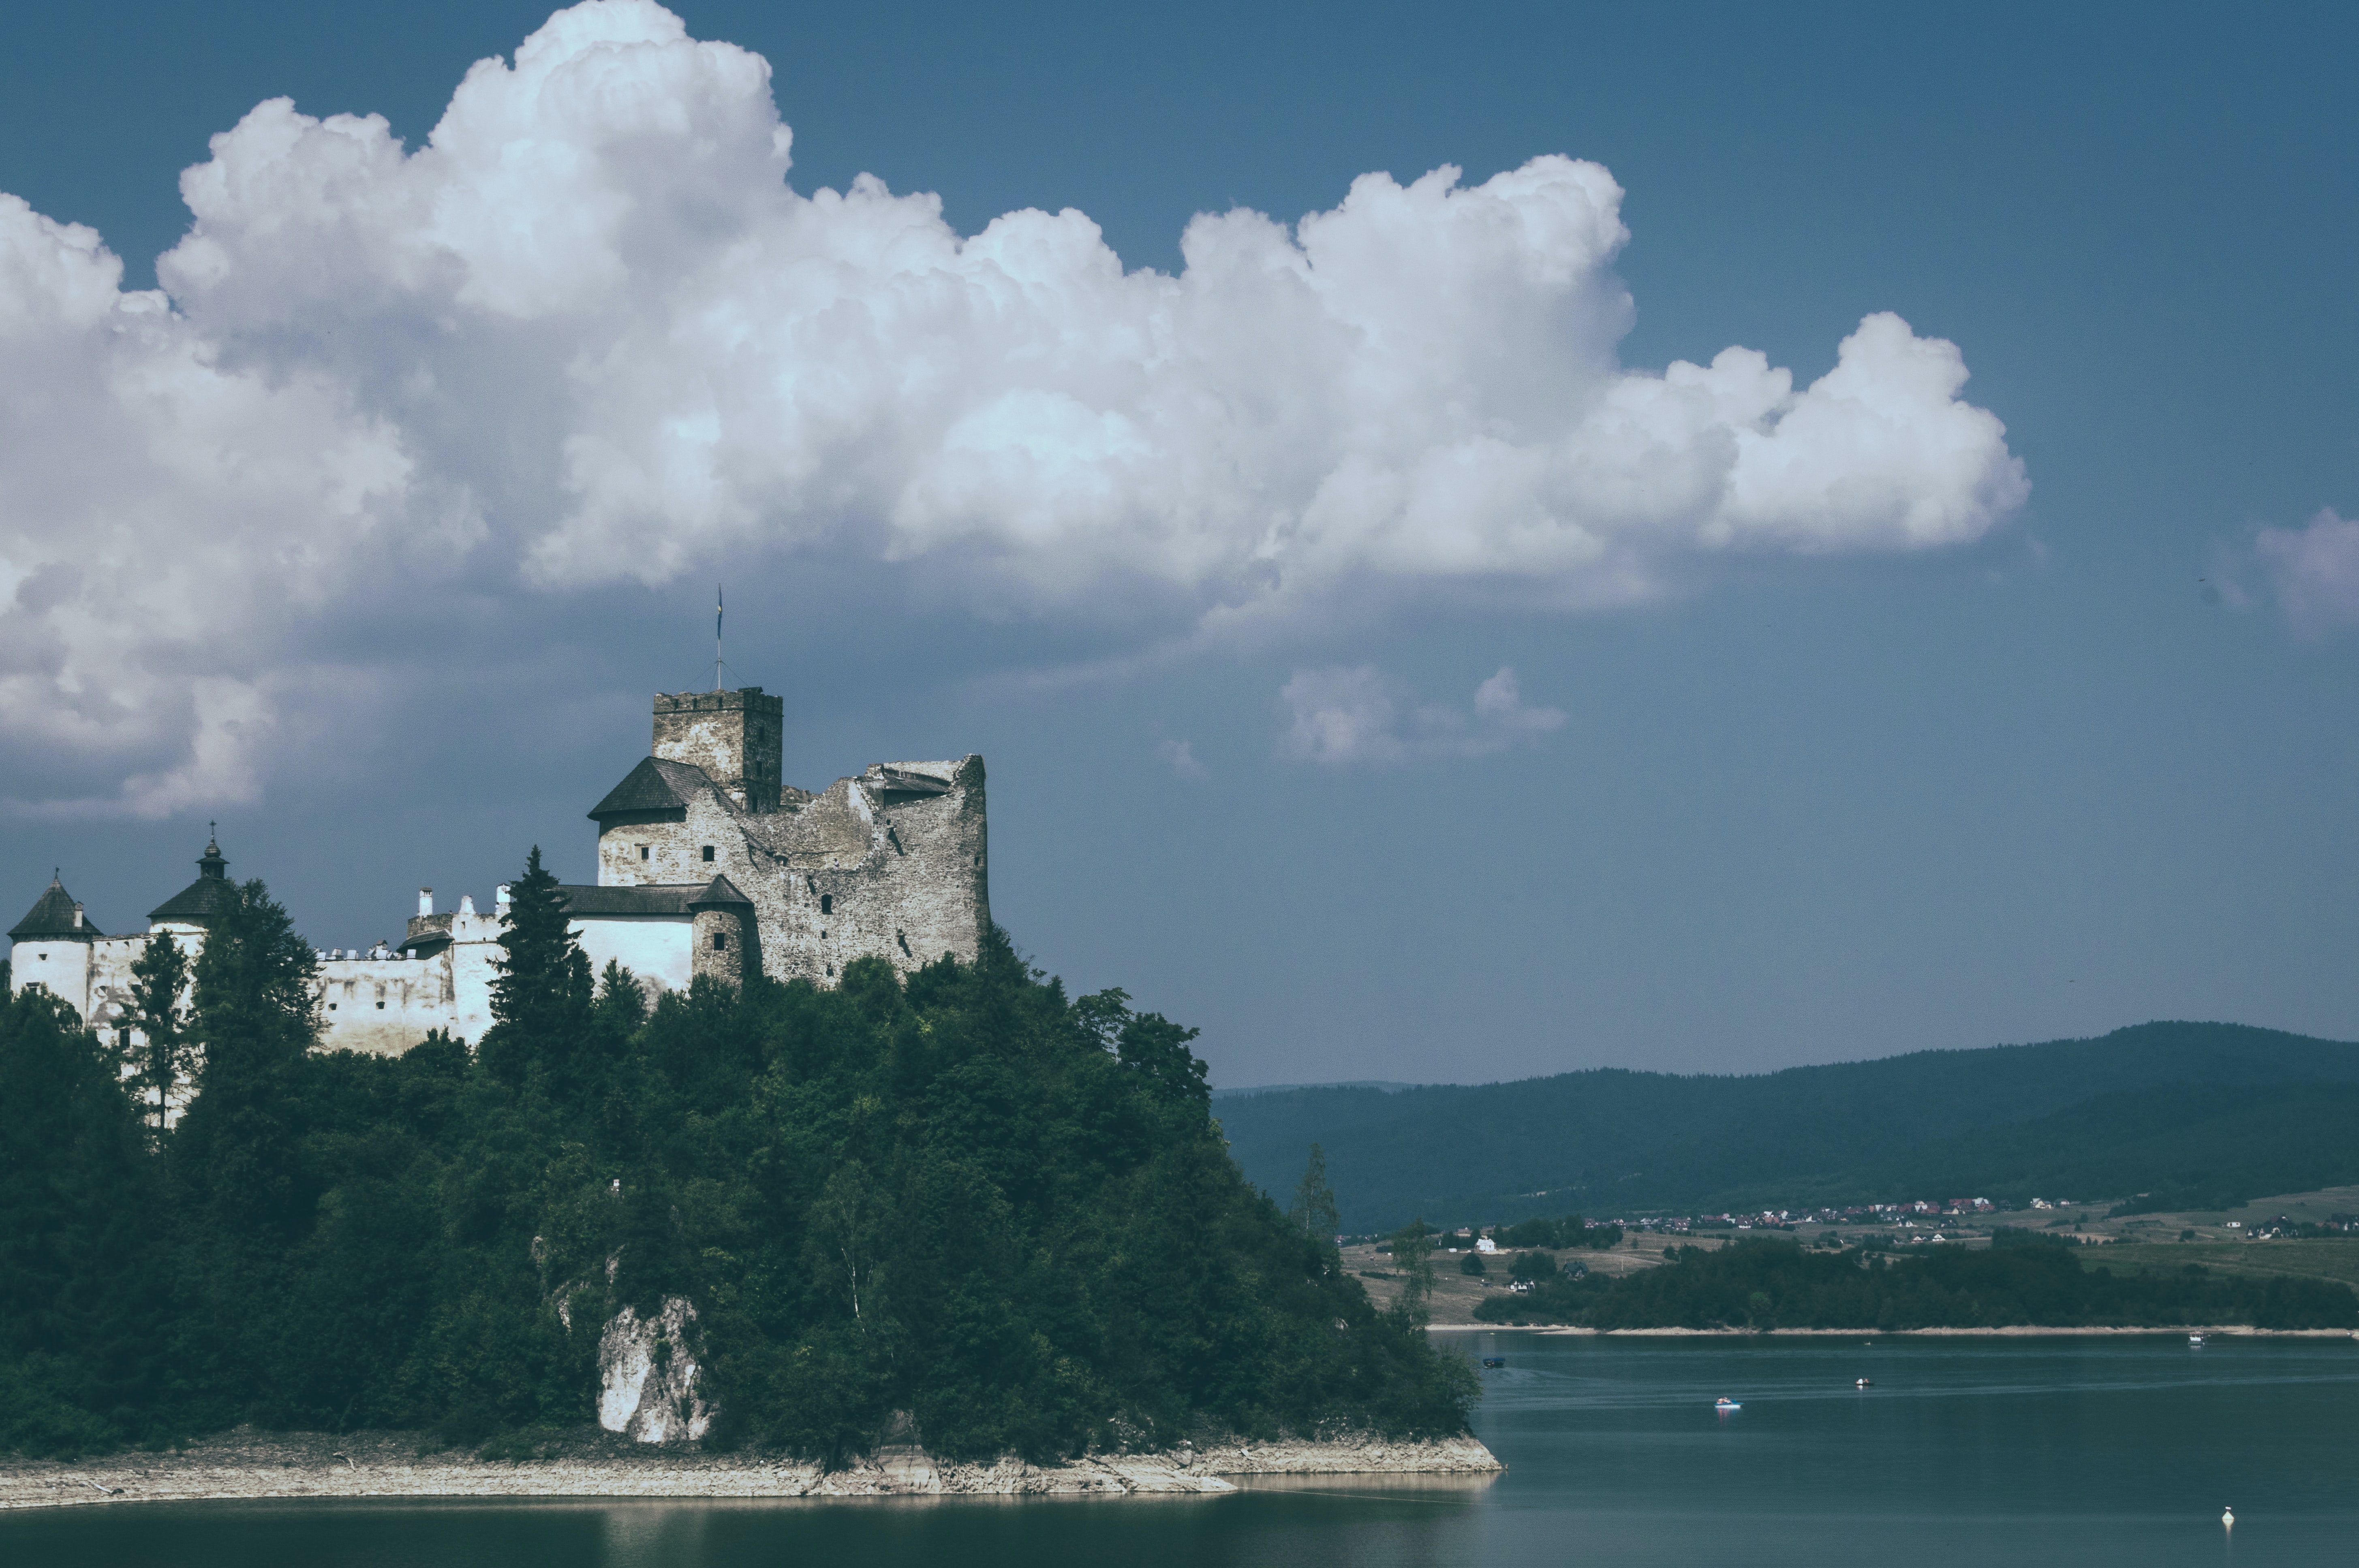 A medieval castle on a hill at the shore of a lake